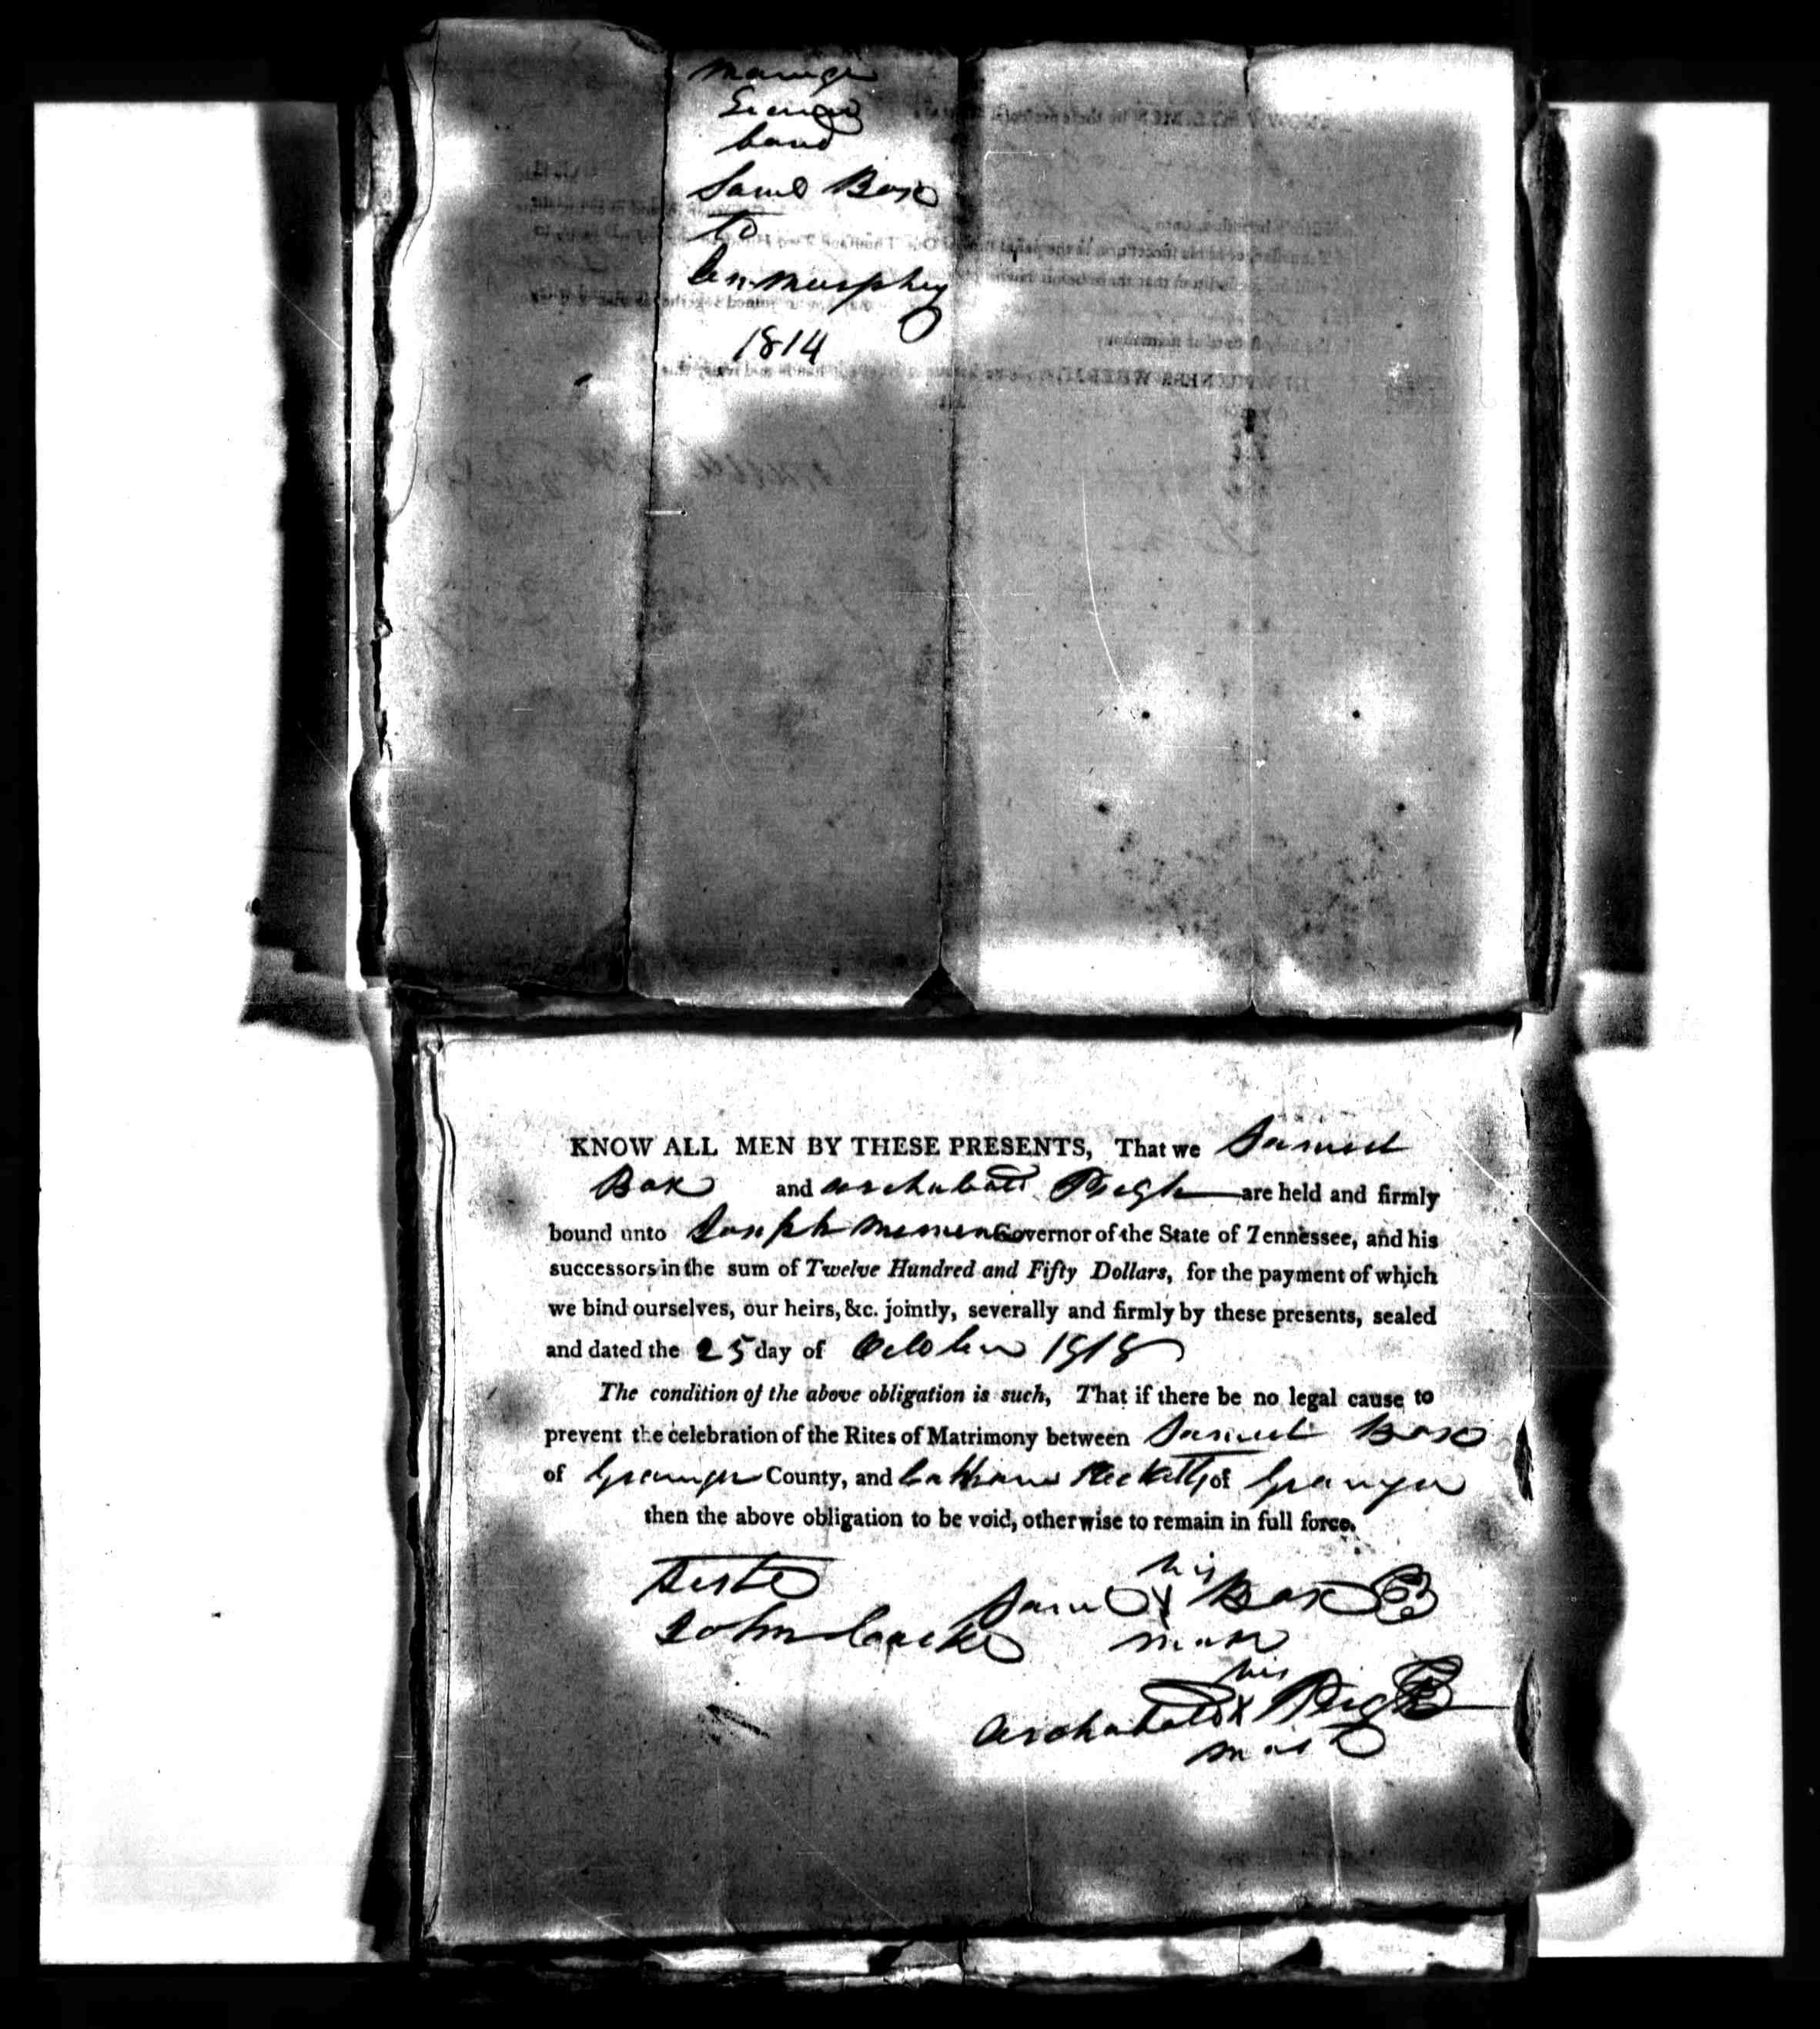 1814 marriage bond for Samuel Pleasant Box, Jr and Jemima Murphy